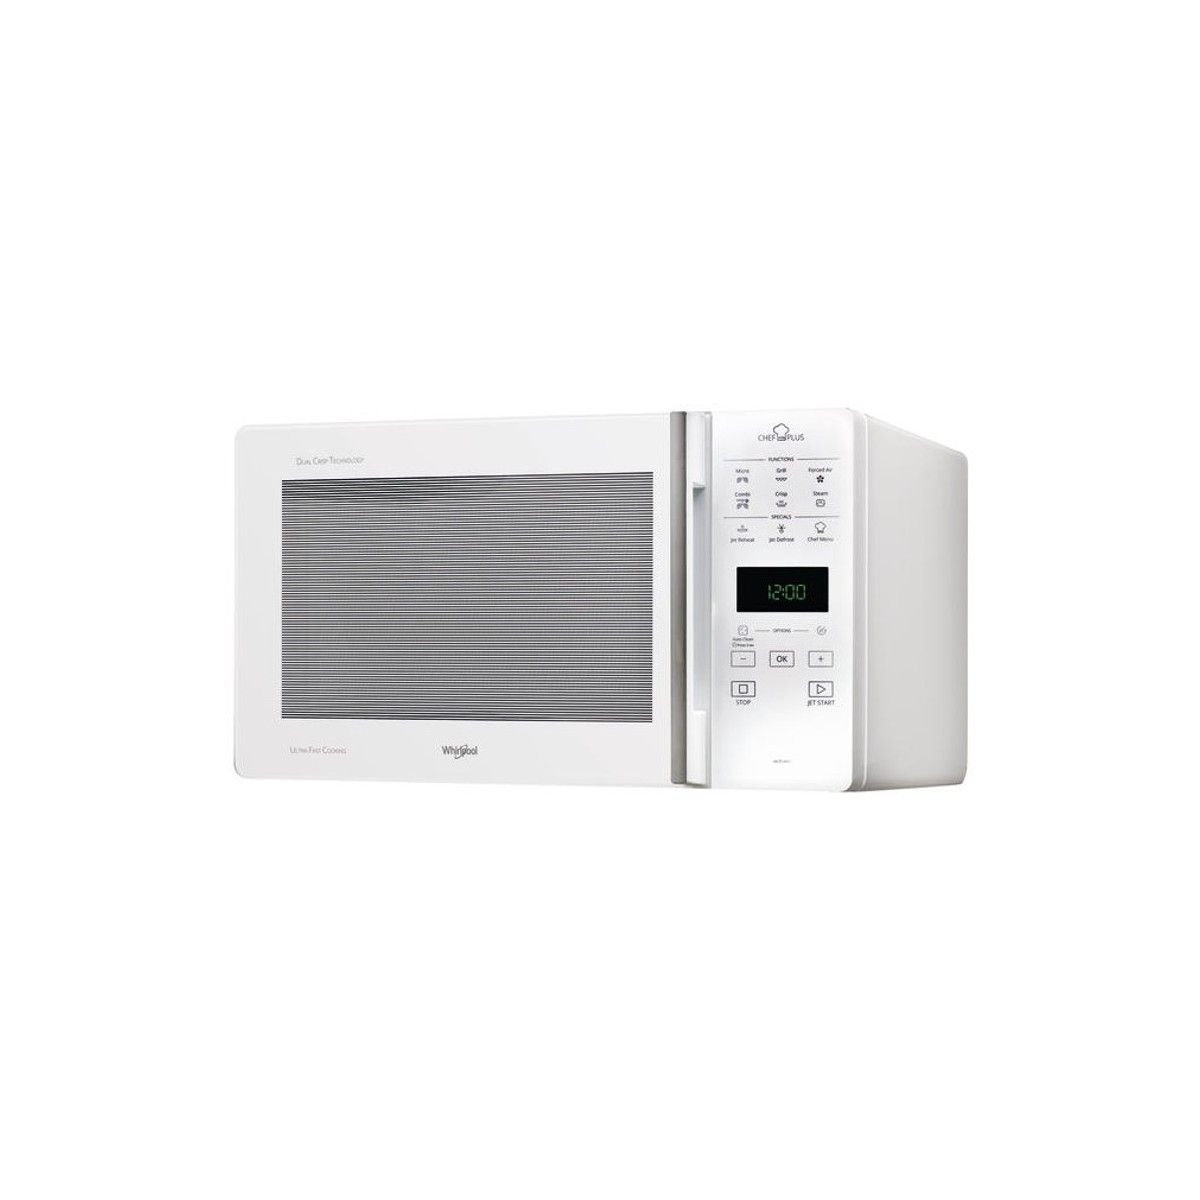 Whirlpool - mcp349/1WH - Microondas + Grill 25L 800 W color ...